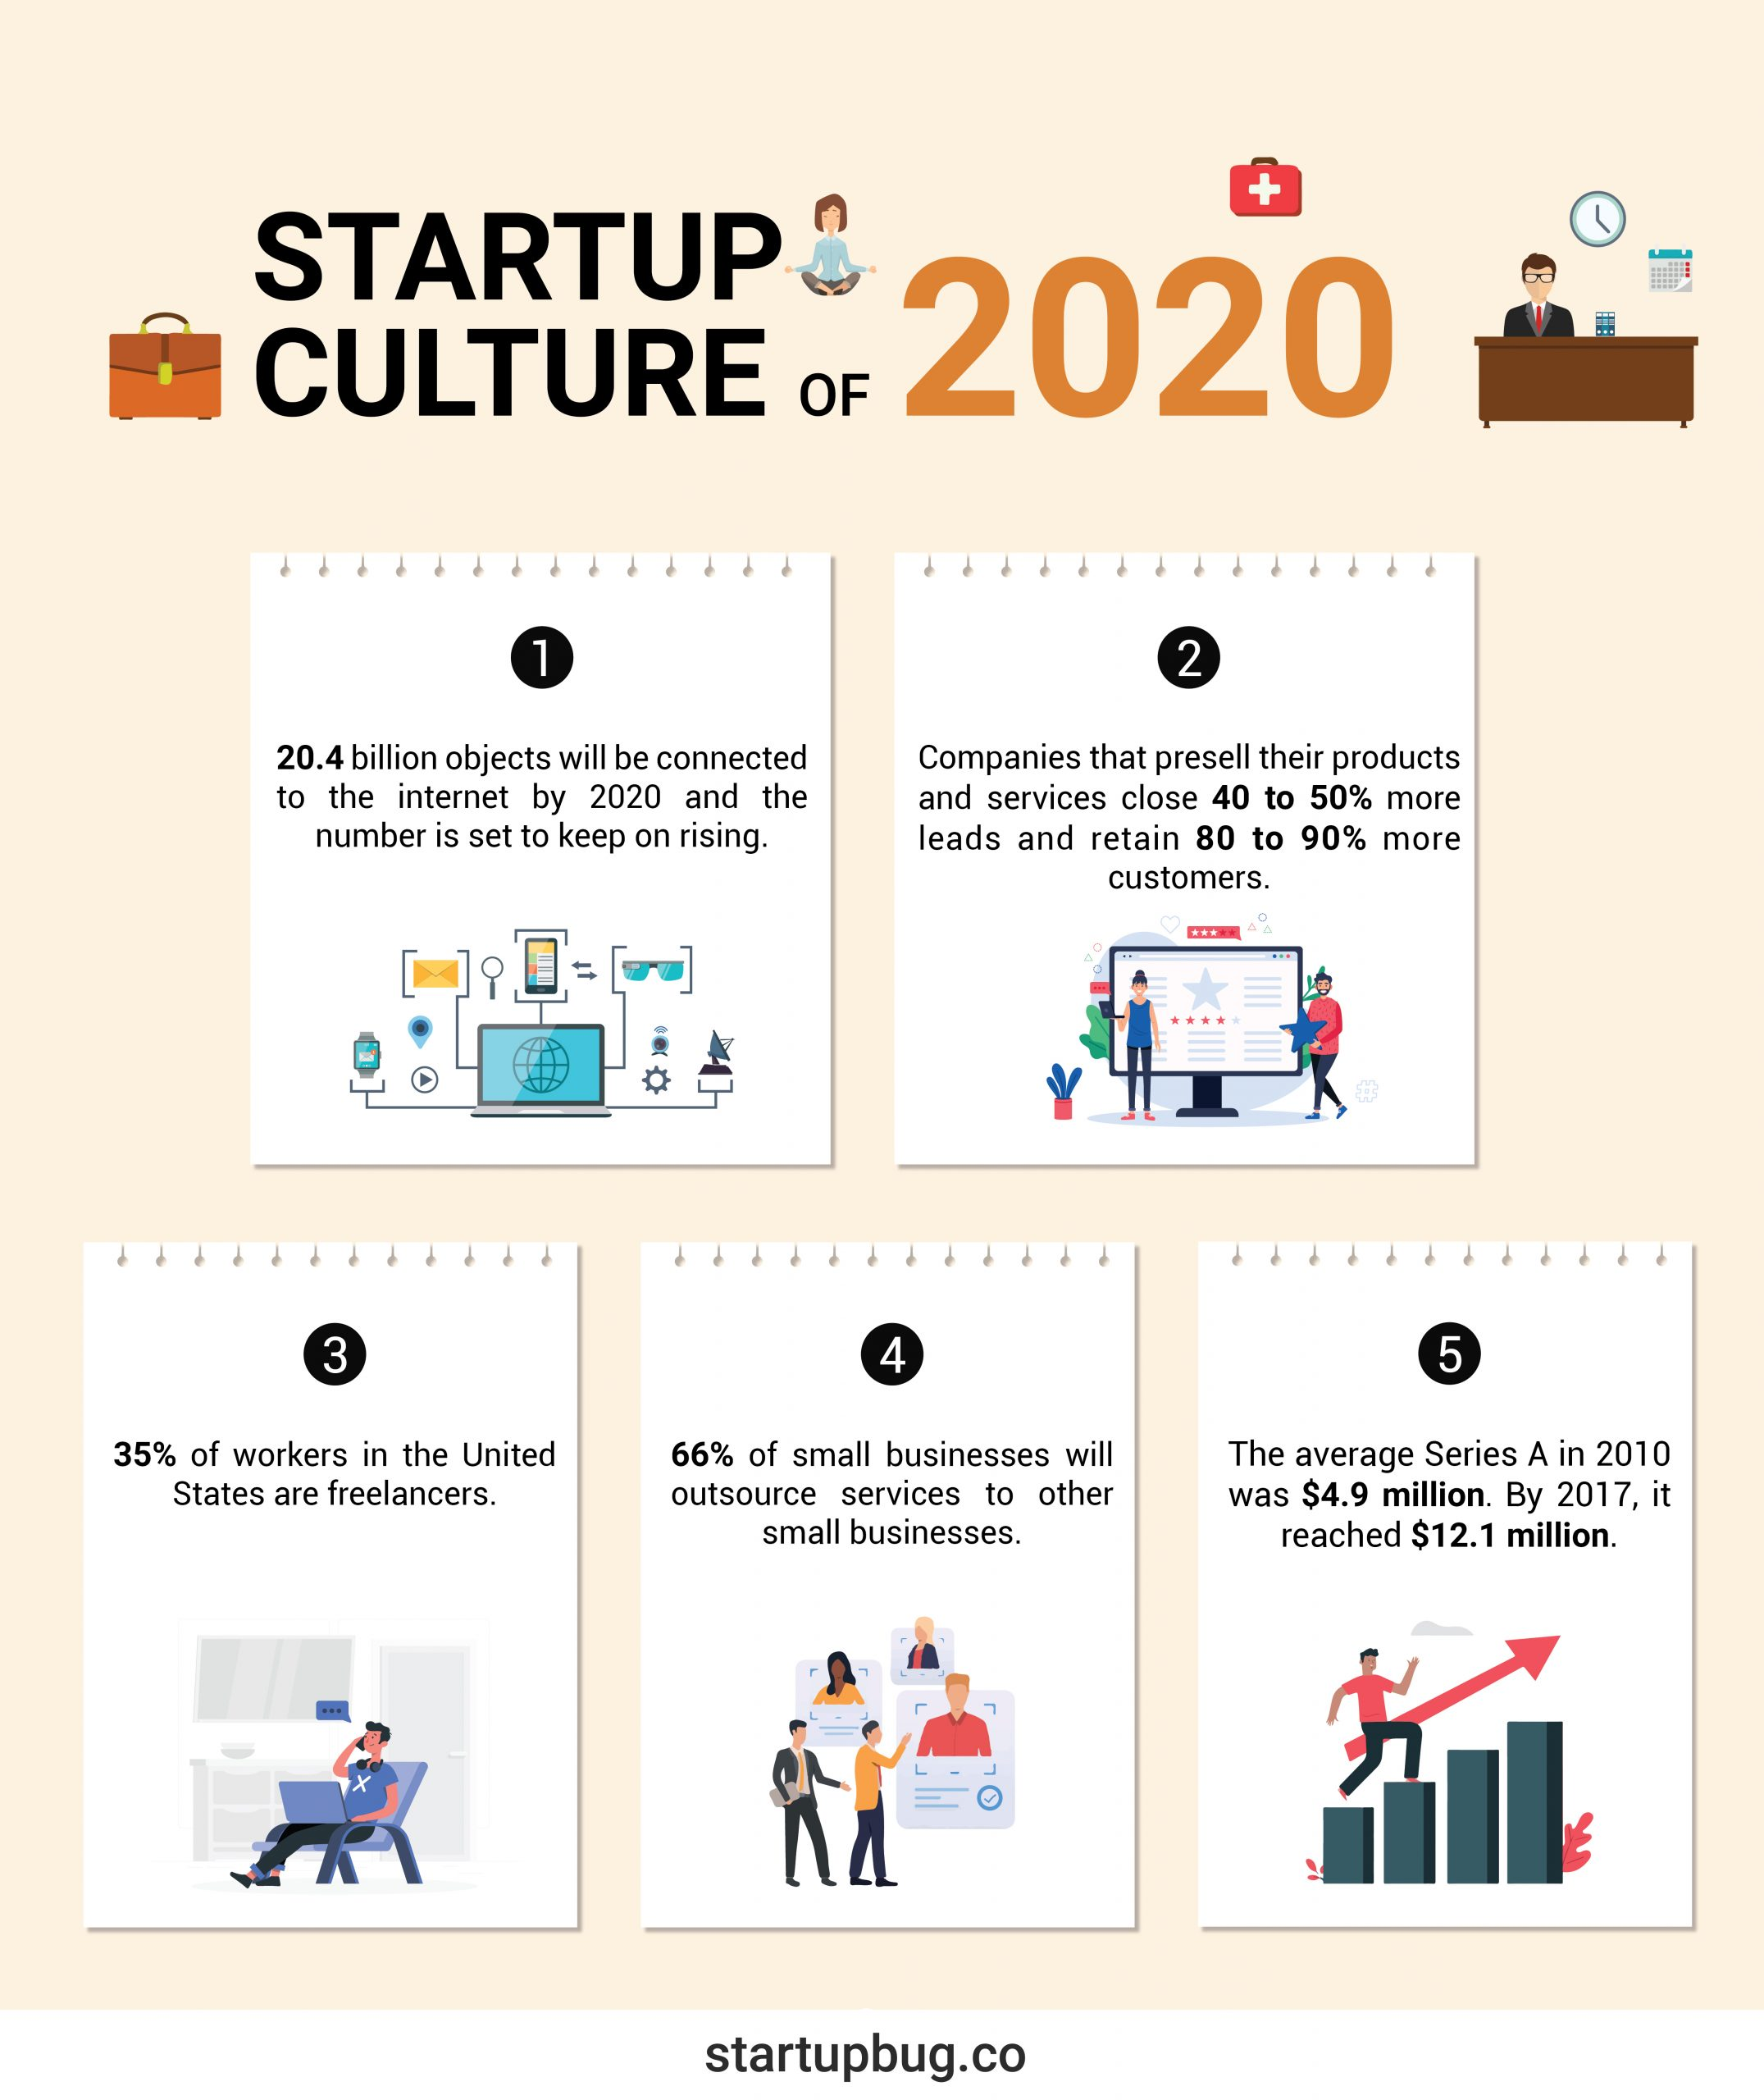 Startup culture of 2020